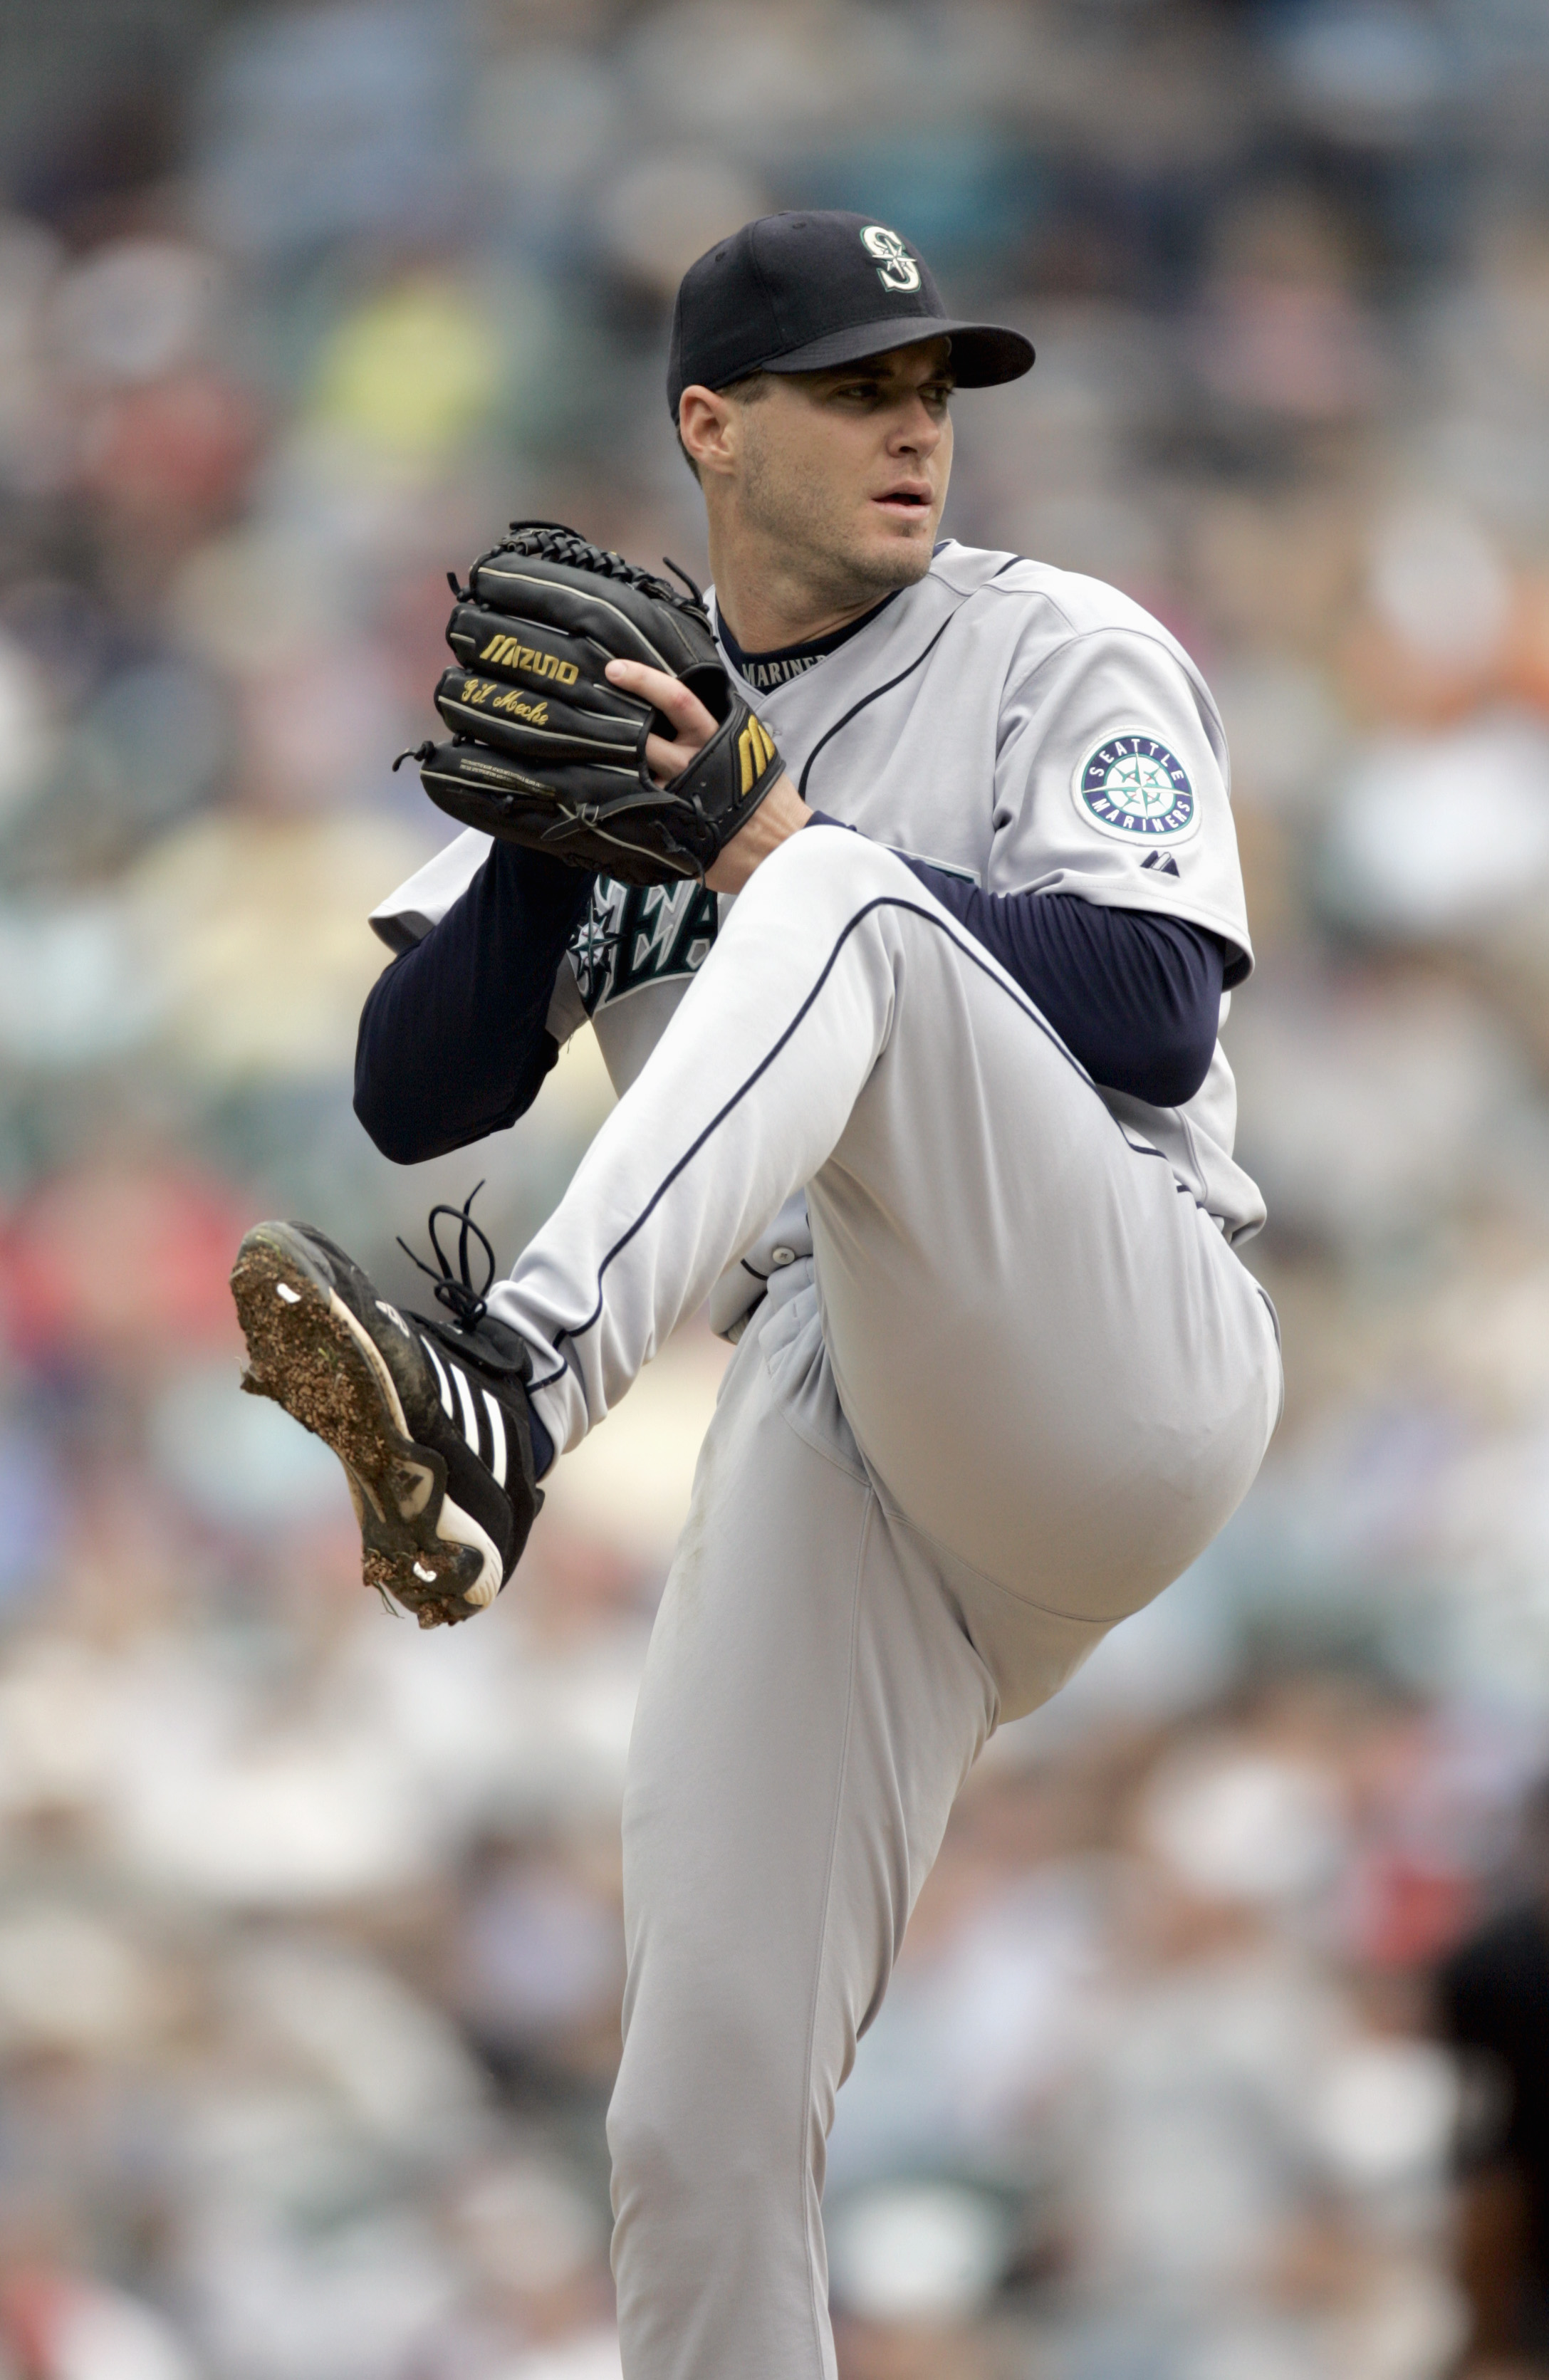 DETROIT - SEPTEMBER 6: Gil Meche #55 of the Seattle Mariners winds back to pitch during the game against the Detroit Tigers on September 6, 2006 at Comerica Park in Detroit, Michigan. (Photo By Gregory Shamus/Getty Images)